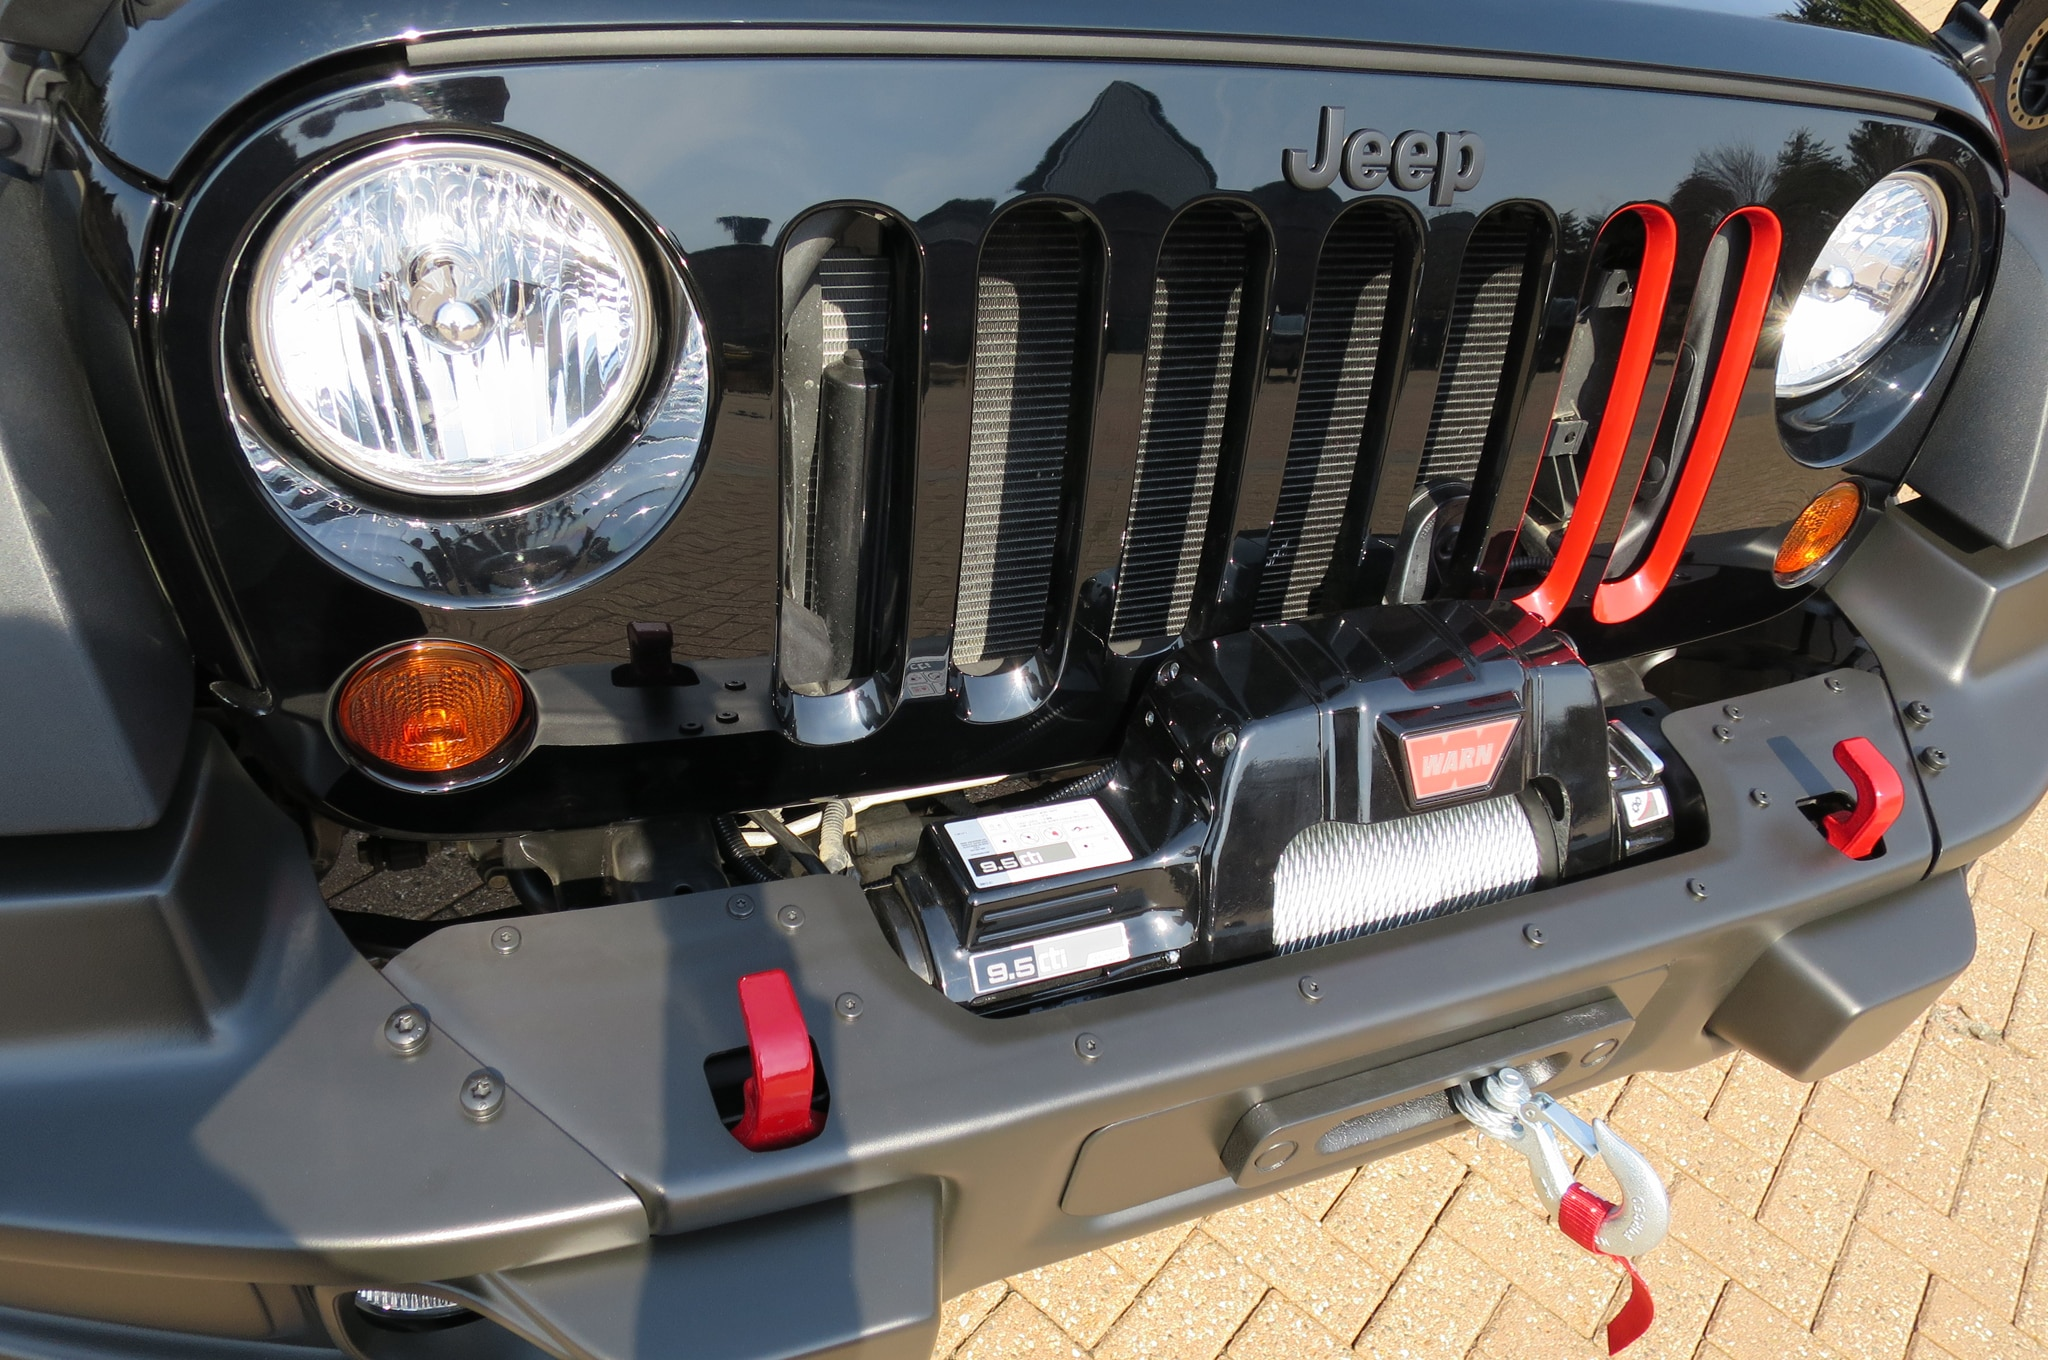 Jeep Wrangler Level Red Concept grille 02